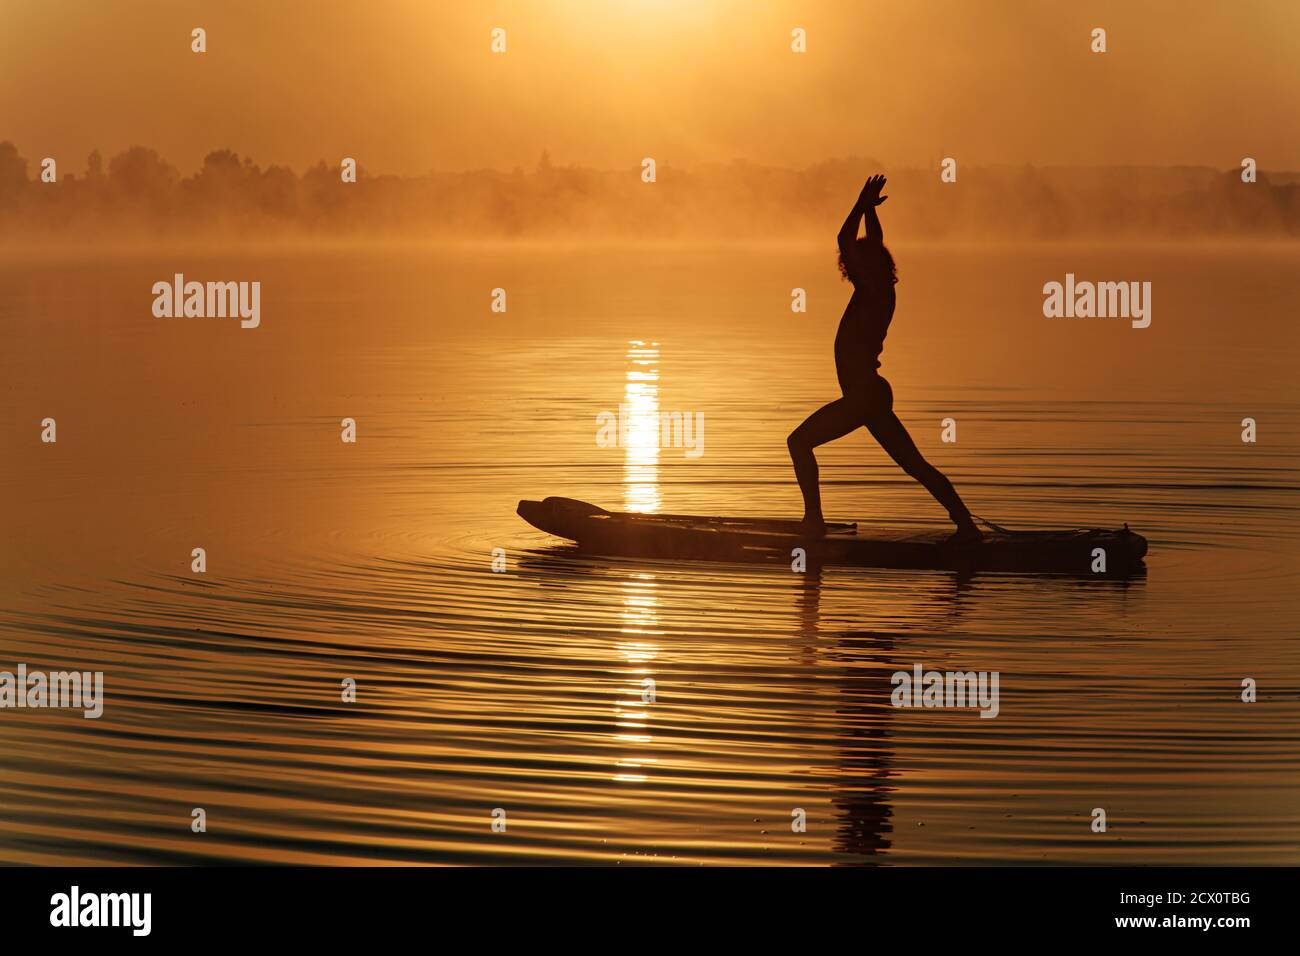 Silhouette of sportive man doing yoga on paddle board Stock Photo